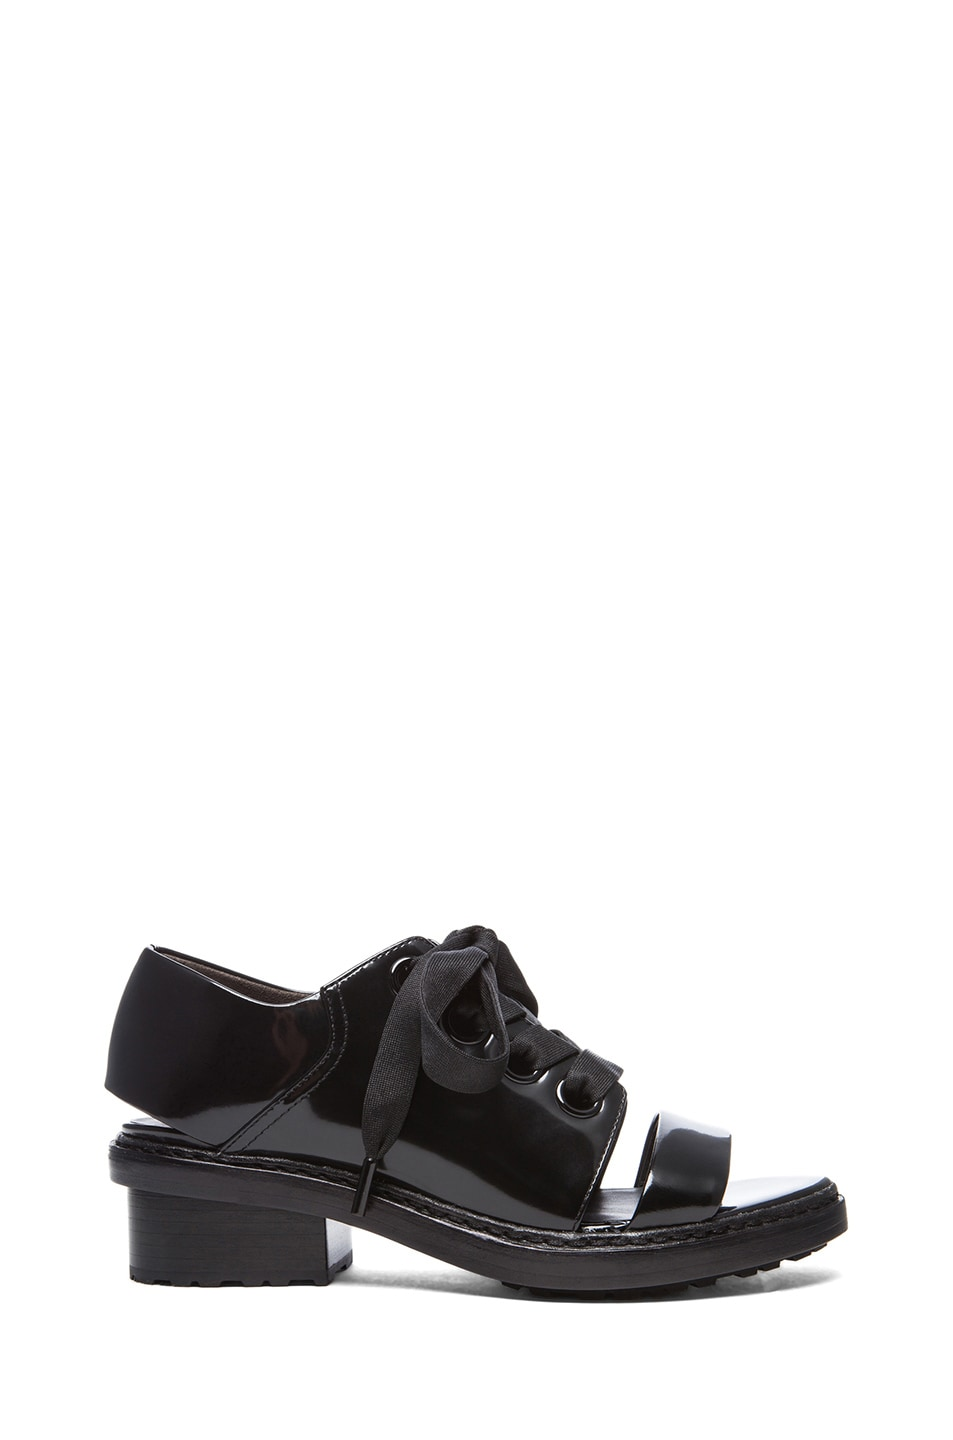 Image 1 of 3.1 phillip lim Floreana Open Toe Lace up Leather Booties in Black